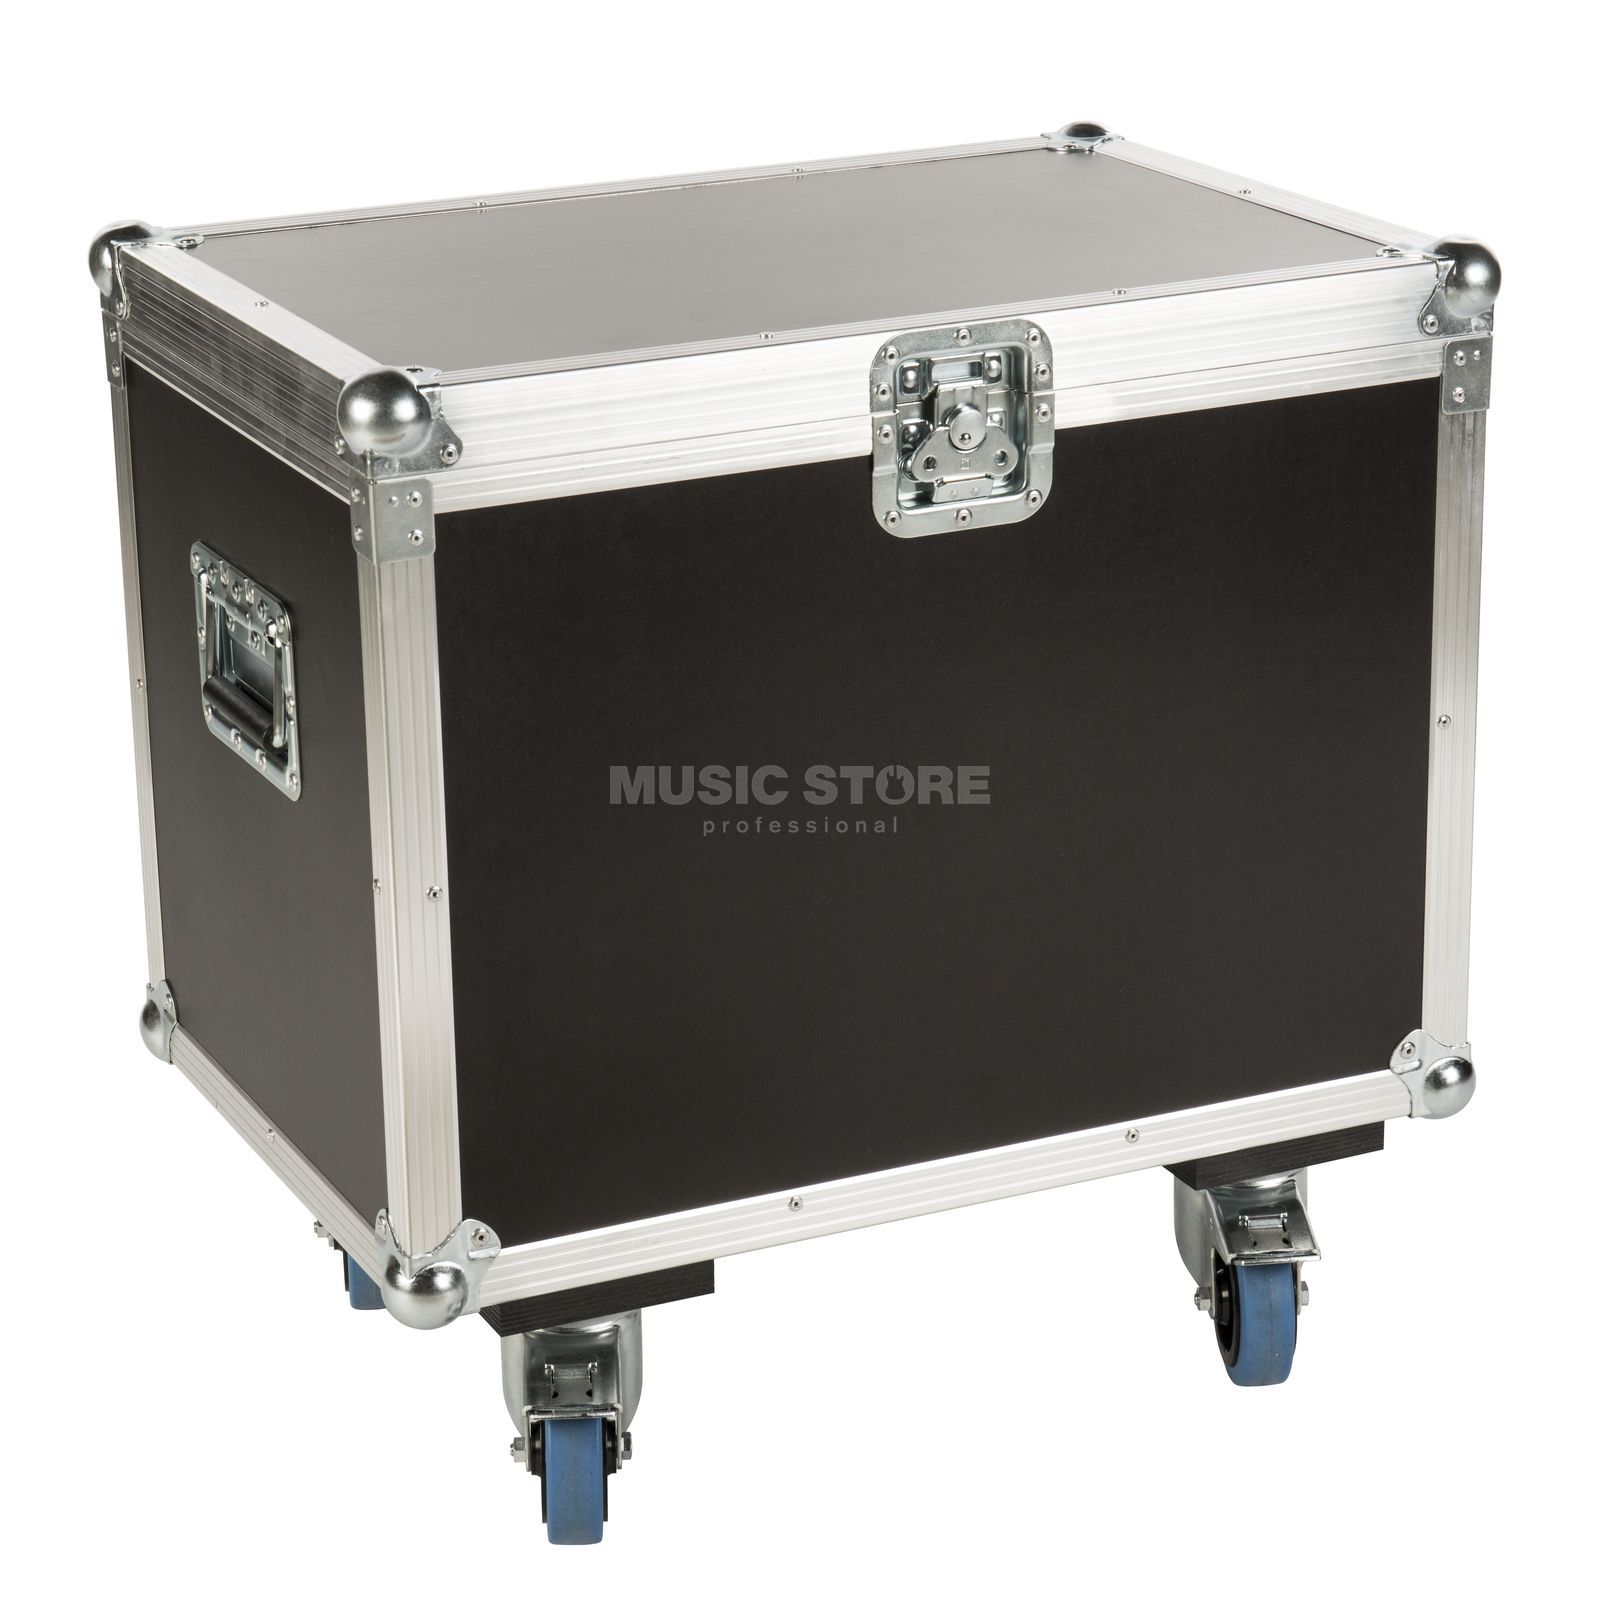 MUSIC STORE Hardware Case Product Image